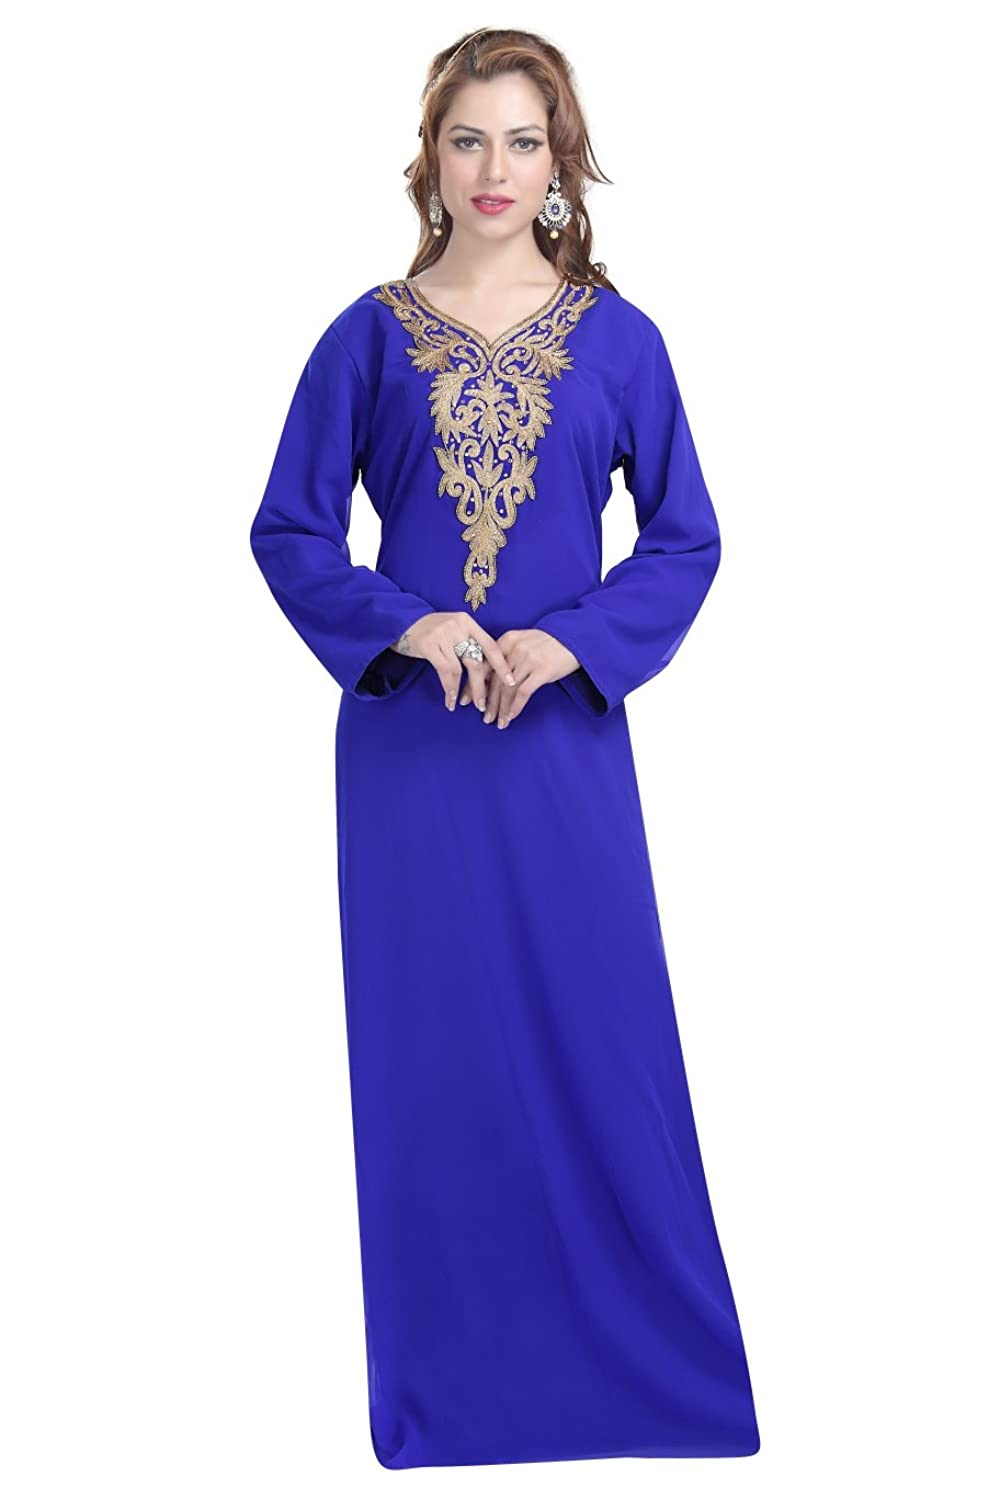 Amazon.com: Simple Elegant Evening Wear Kaftan Dress For Saudi ...